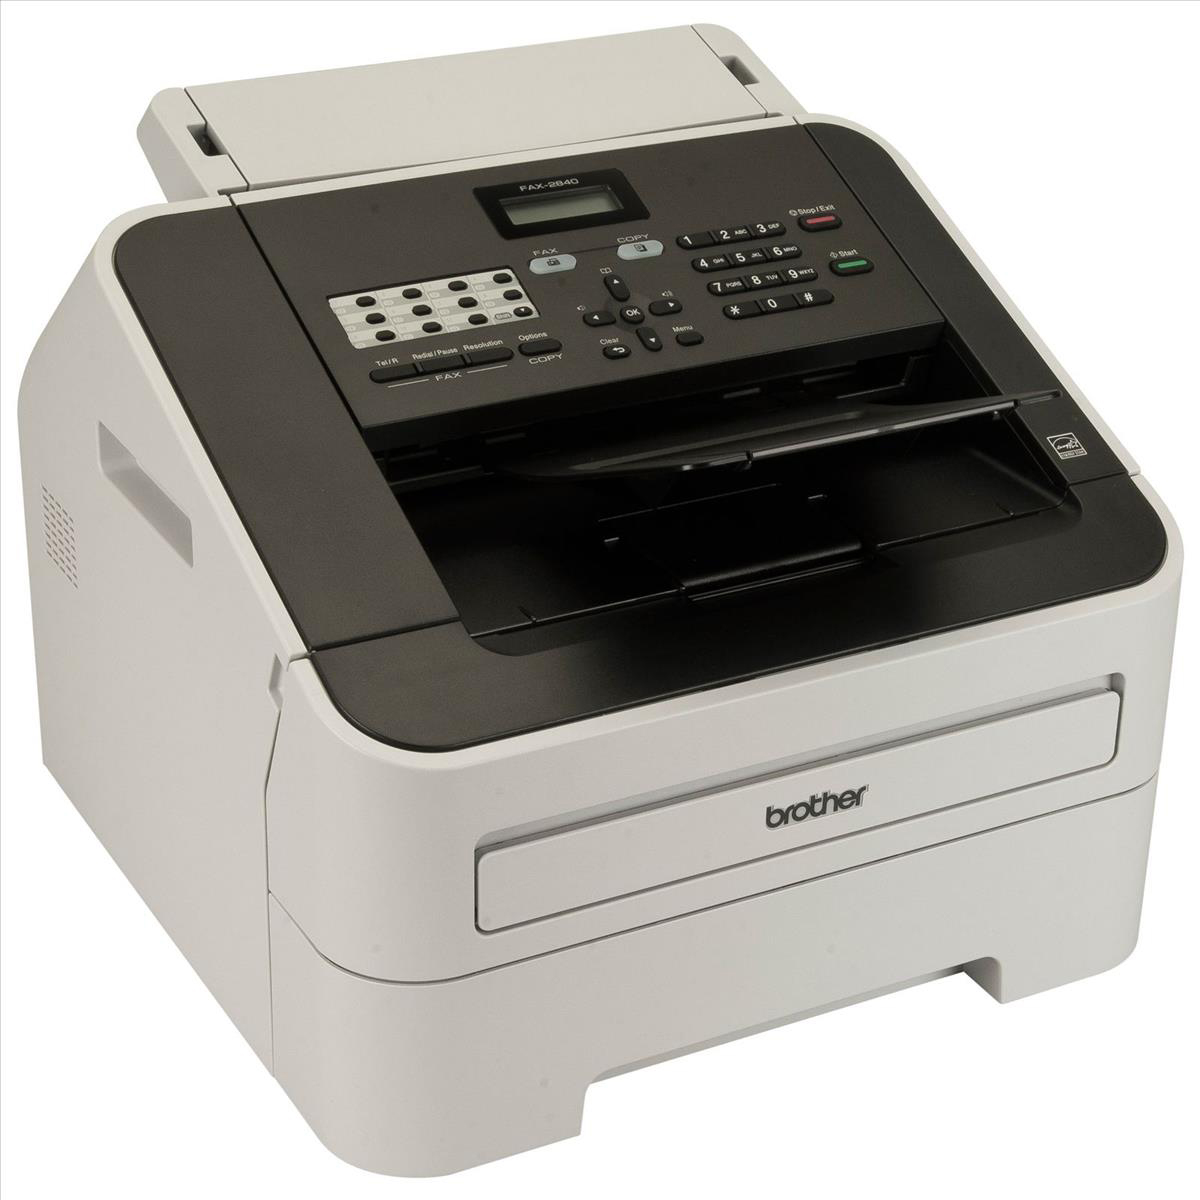 Fax Machines Brother FAX2840 Mono Laser Fax Machine Ref FAX2840ZU1